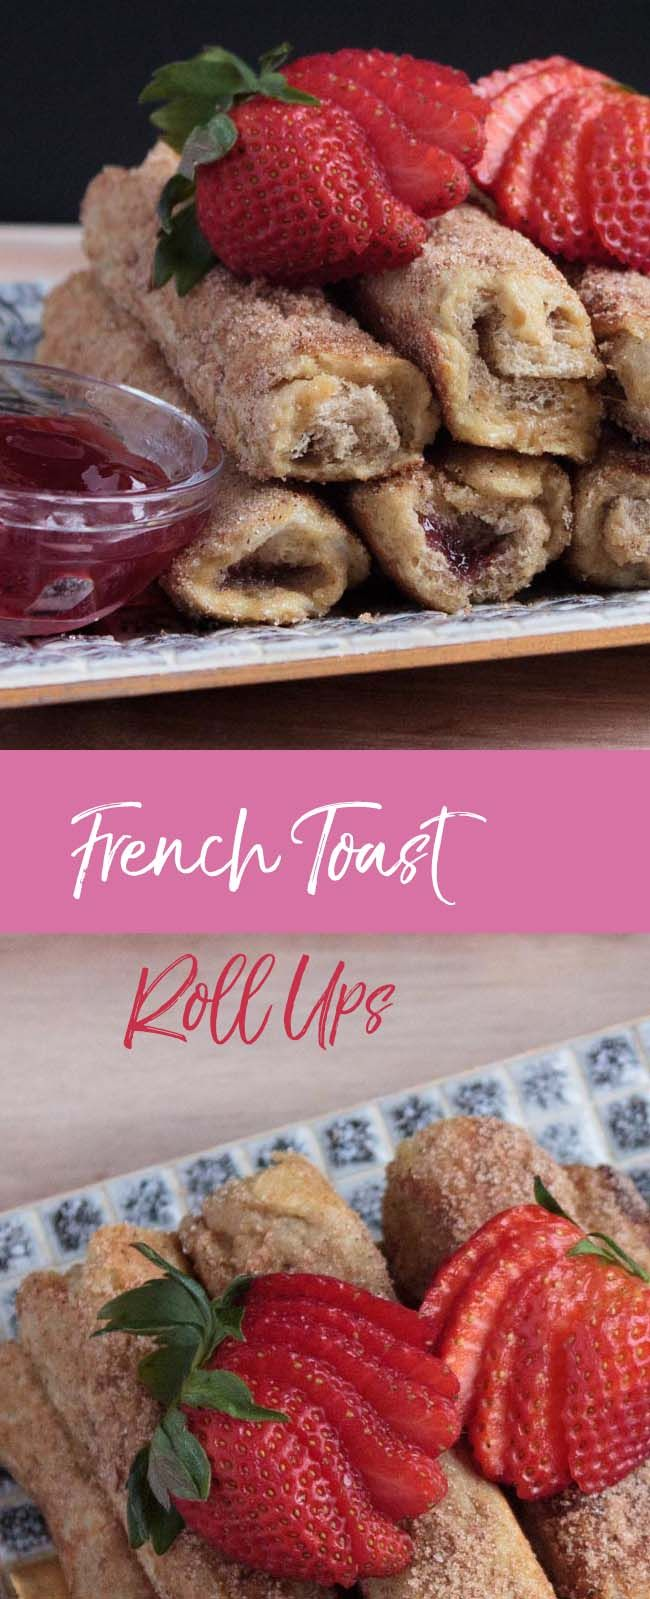 FRENCH TOAST ROLL UPS: These are quite straight forward and a great Sunday brunch dish to whip up at home. By the time they're rolled in sugar and cinnamon, it's like eating a doughnut.